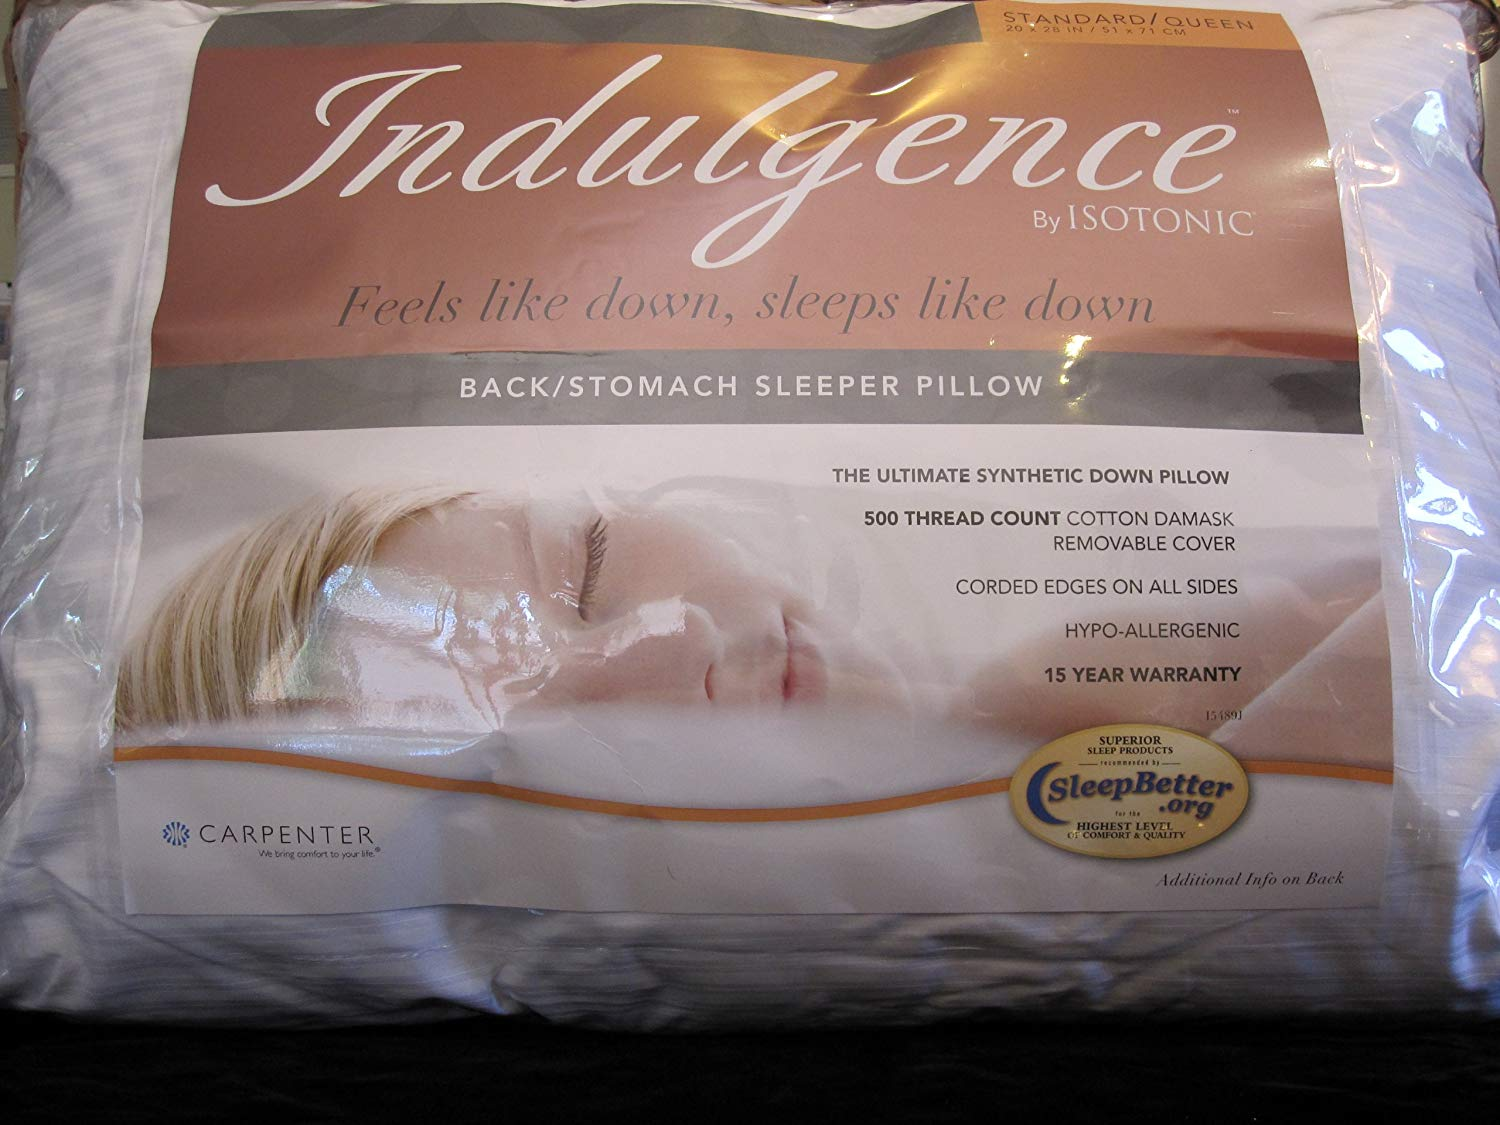 Isotonic Indulgence    Back/Stomach Sleeper Pillow